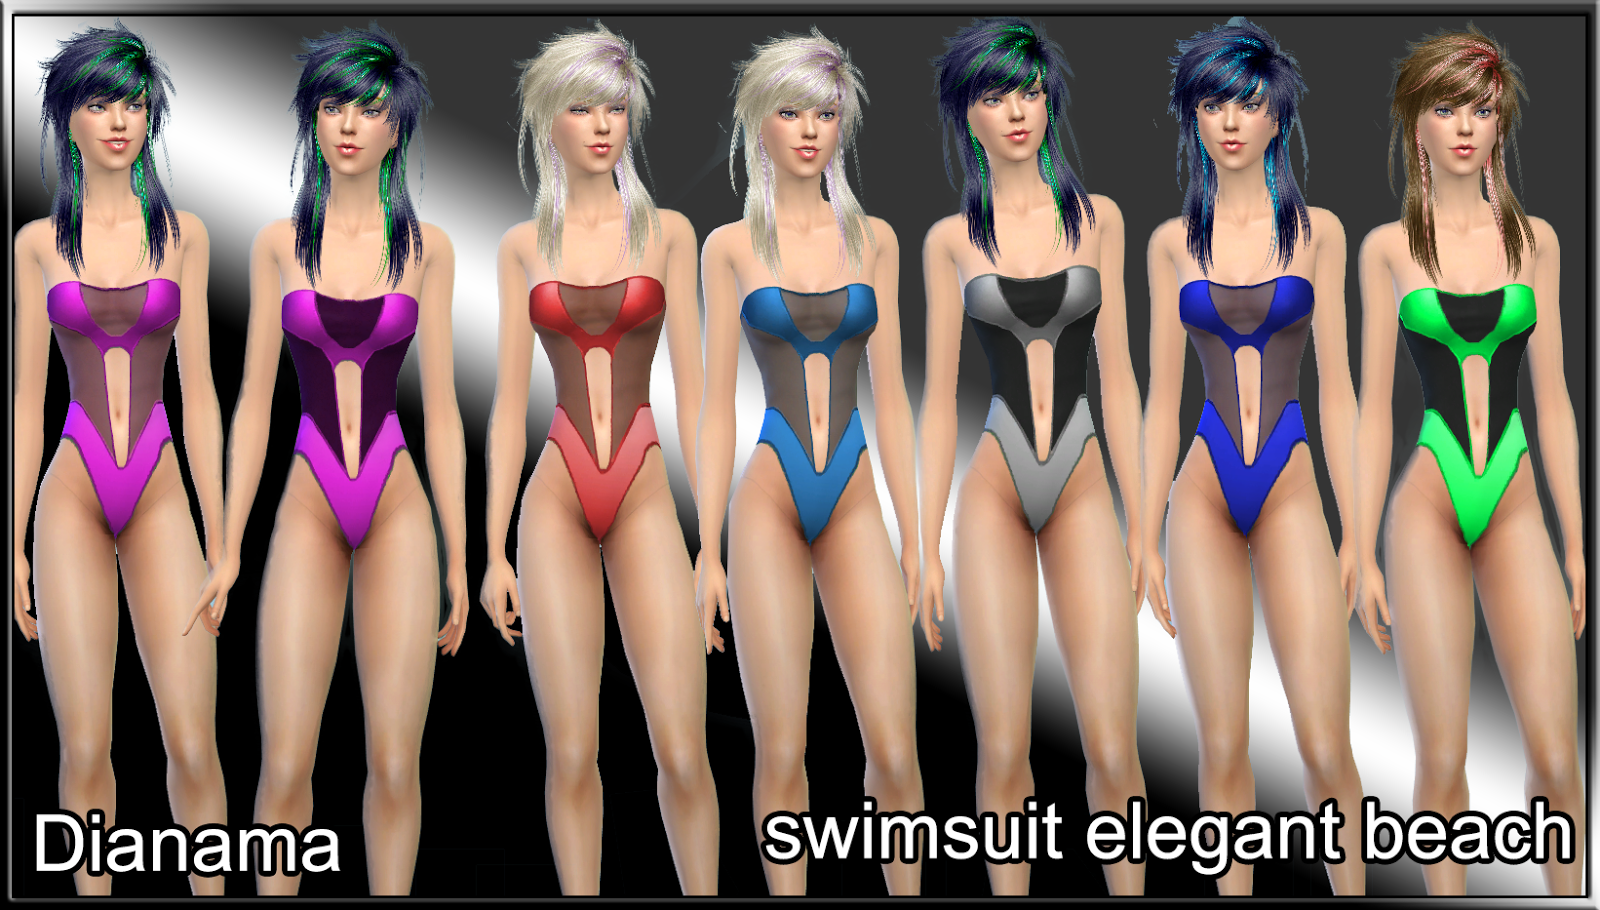 Dianama - swimsuit elegant beach